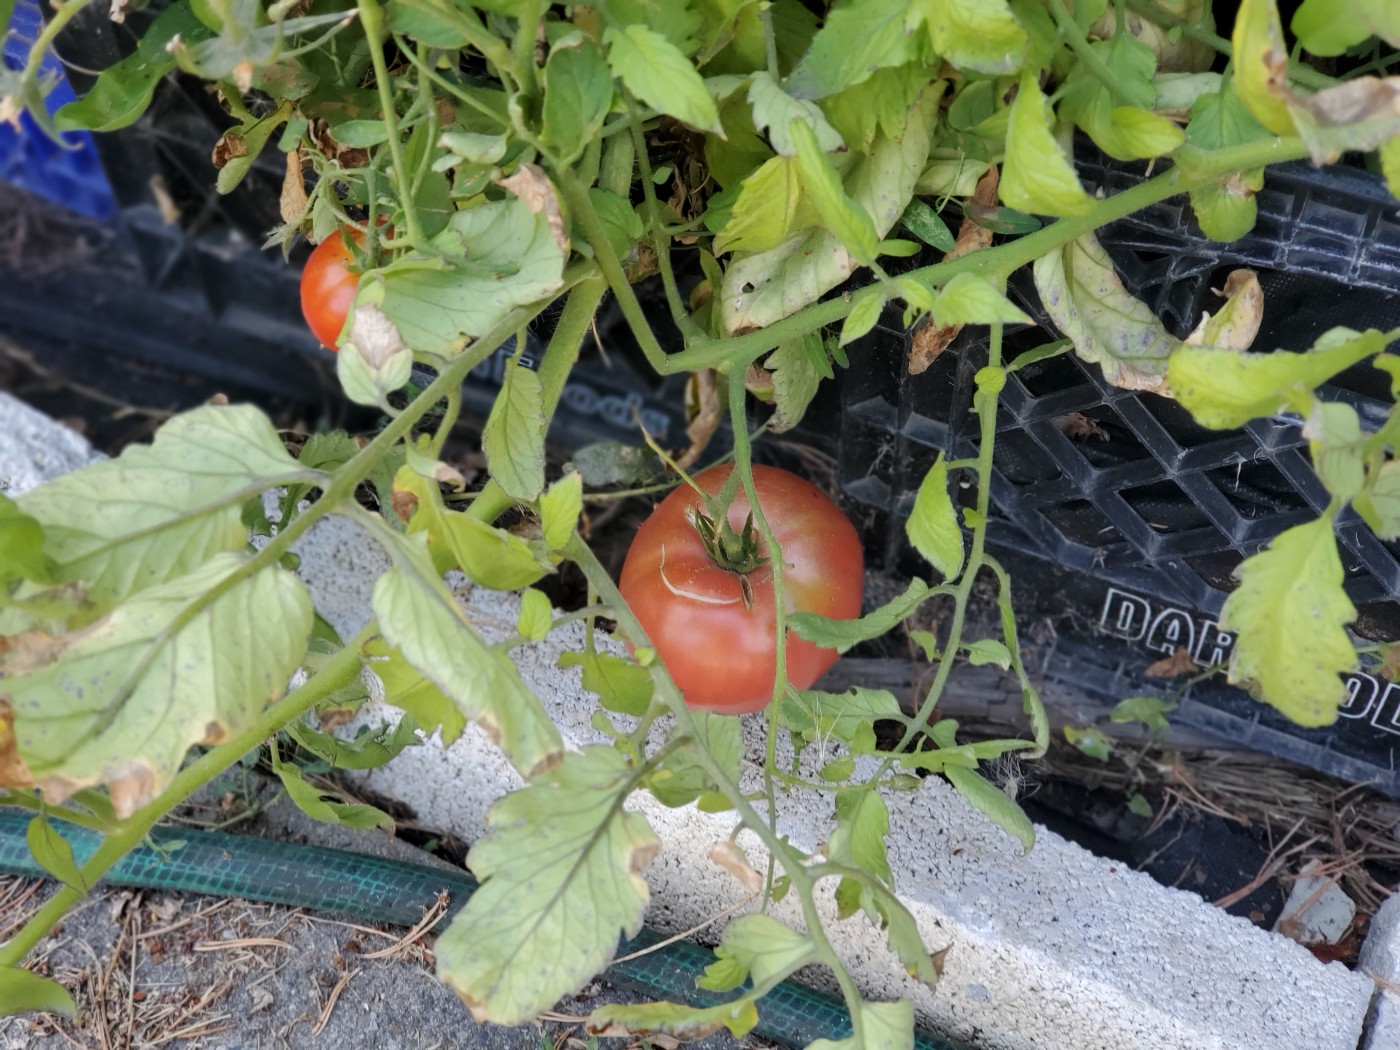 Looking down on a large tomato that is weighting down the vine of a tomato planted in a milk crate